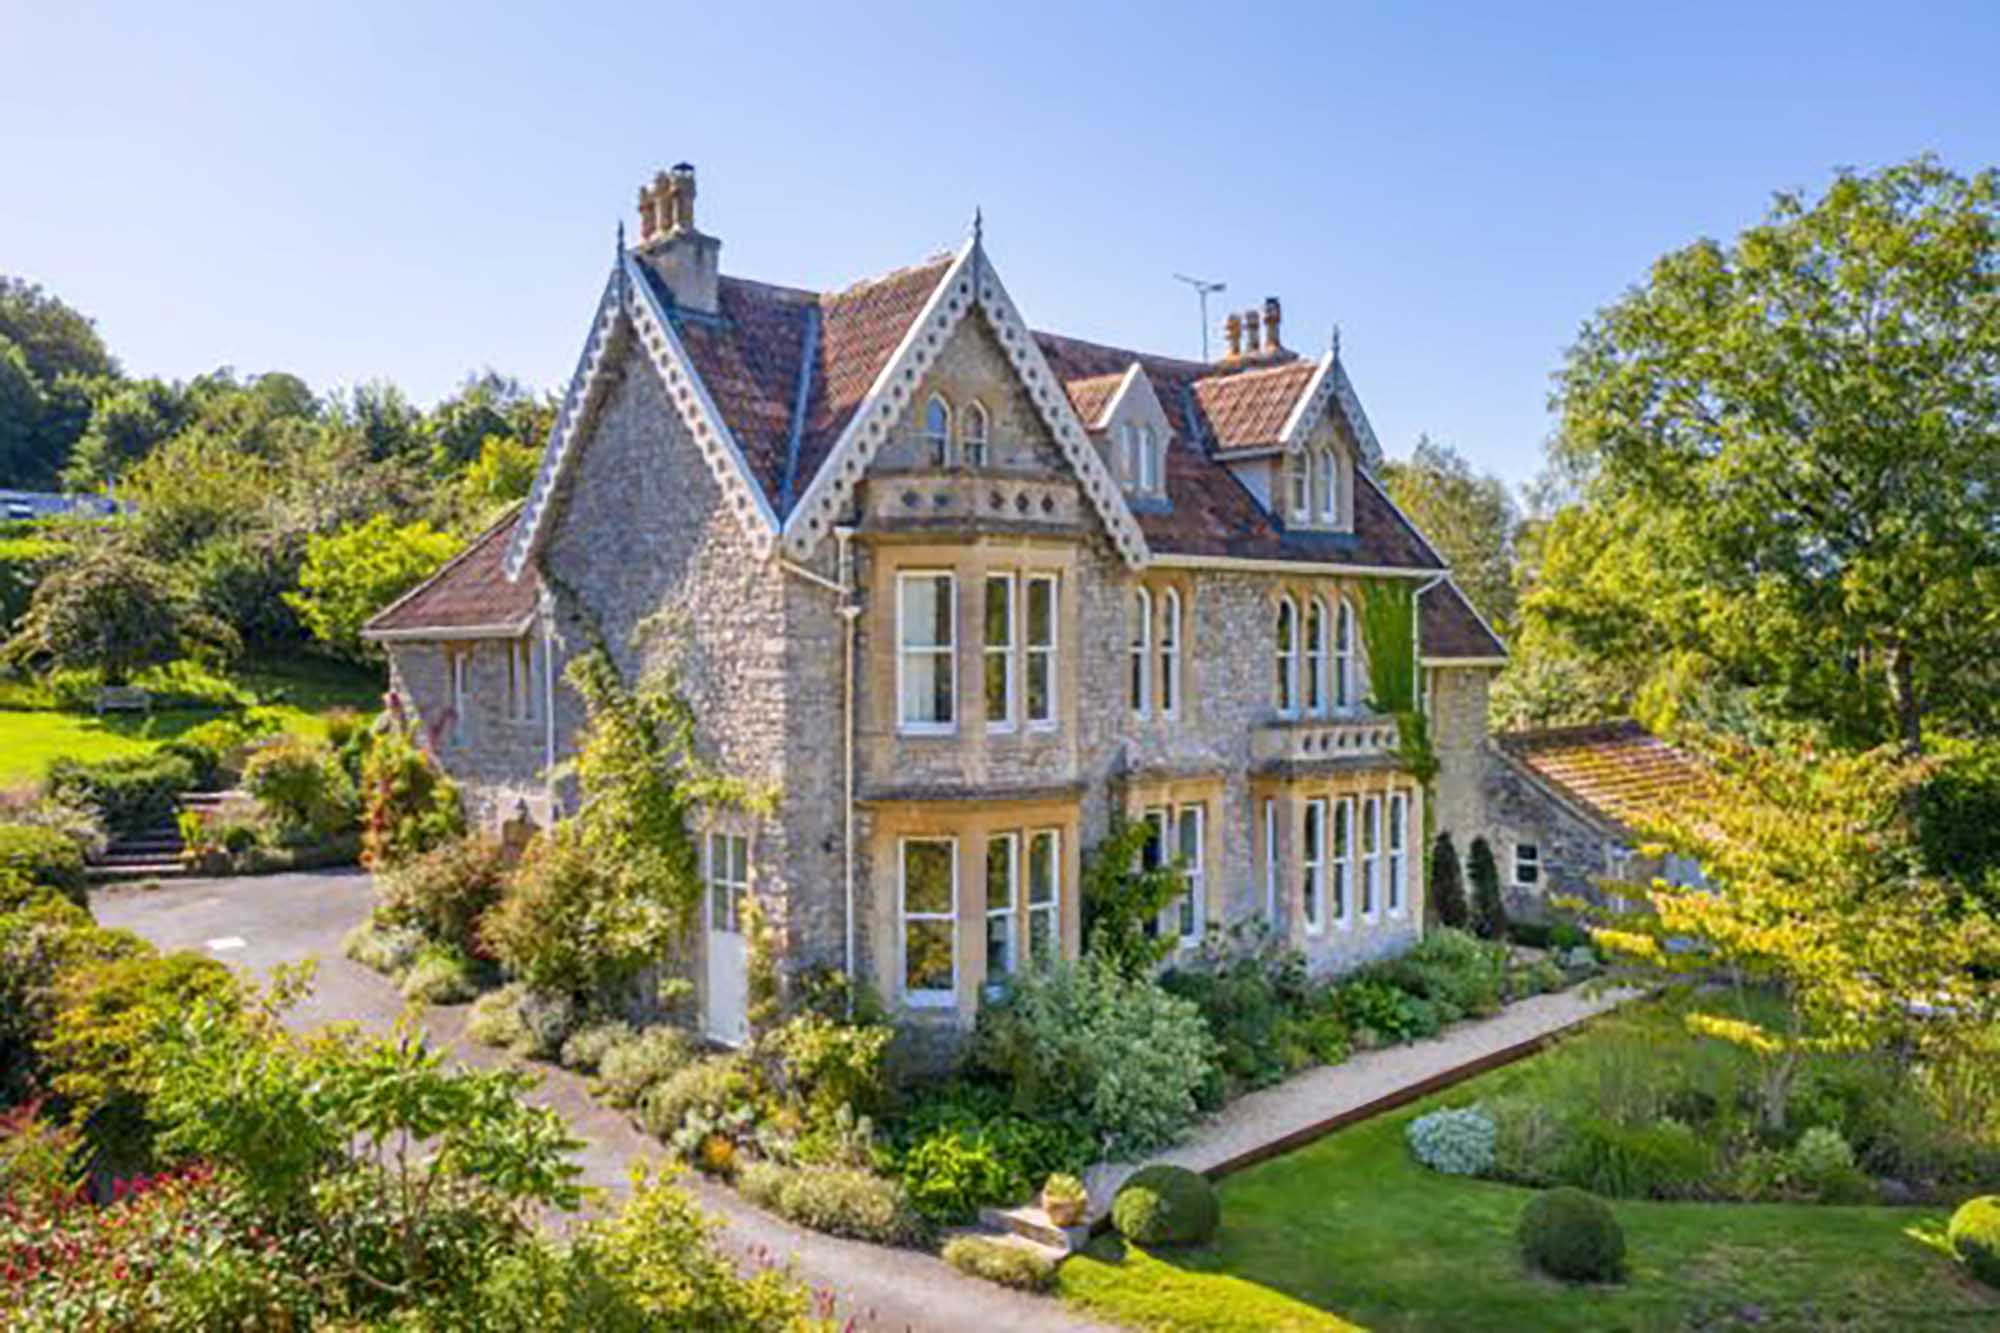 Elegant period family home with magical garden